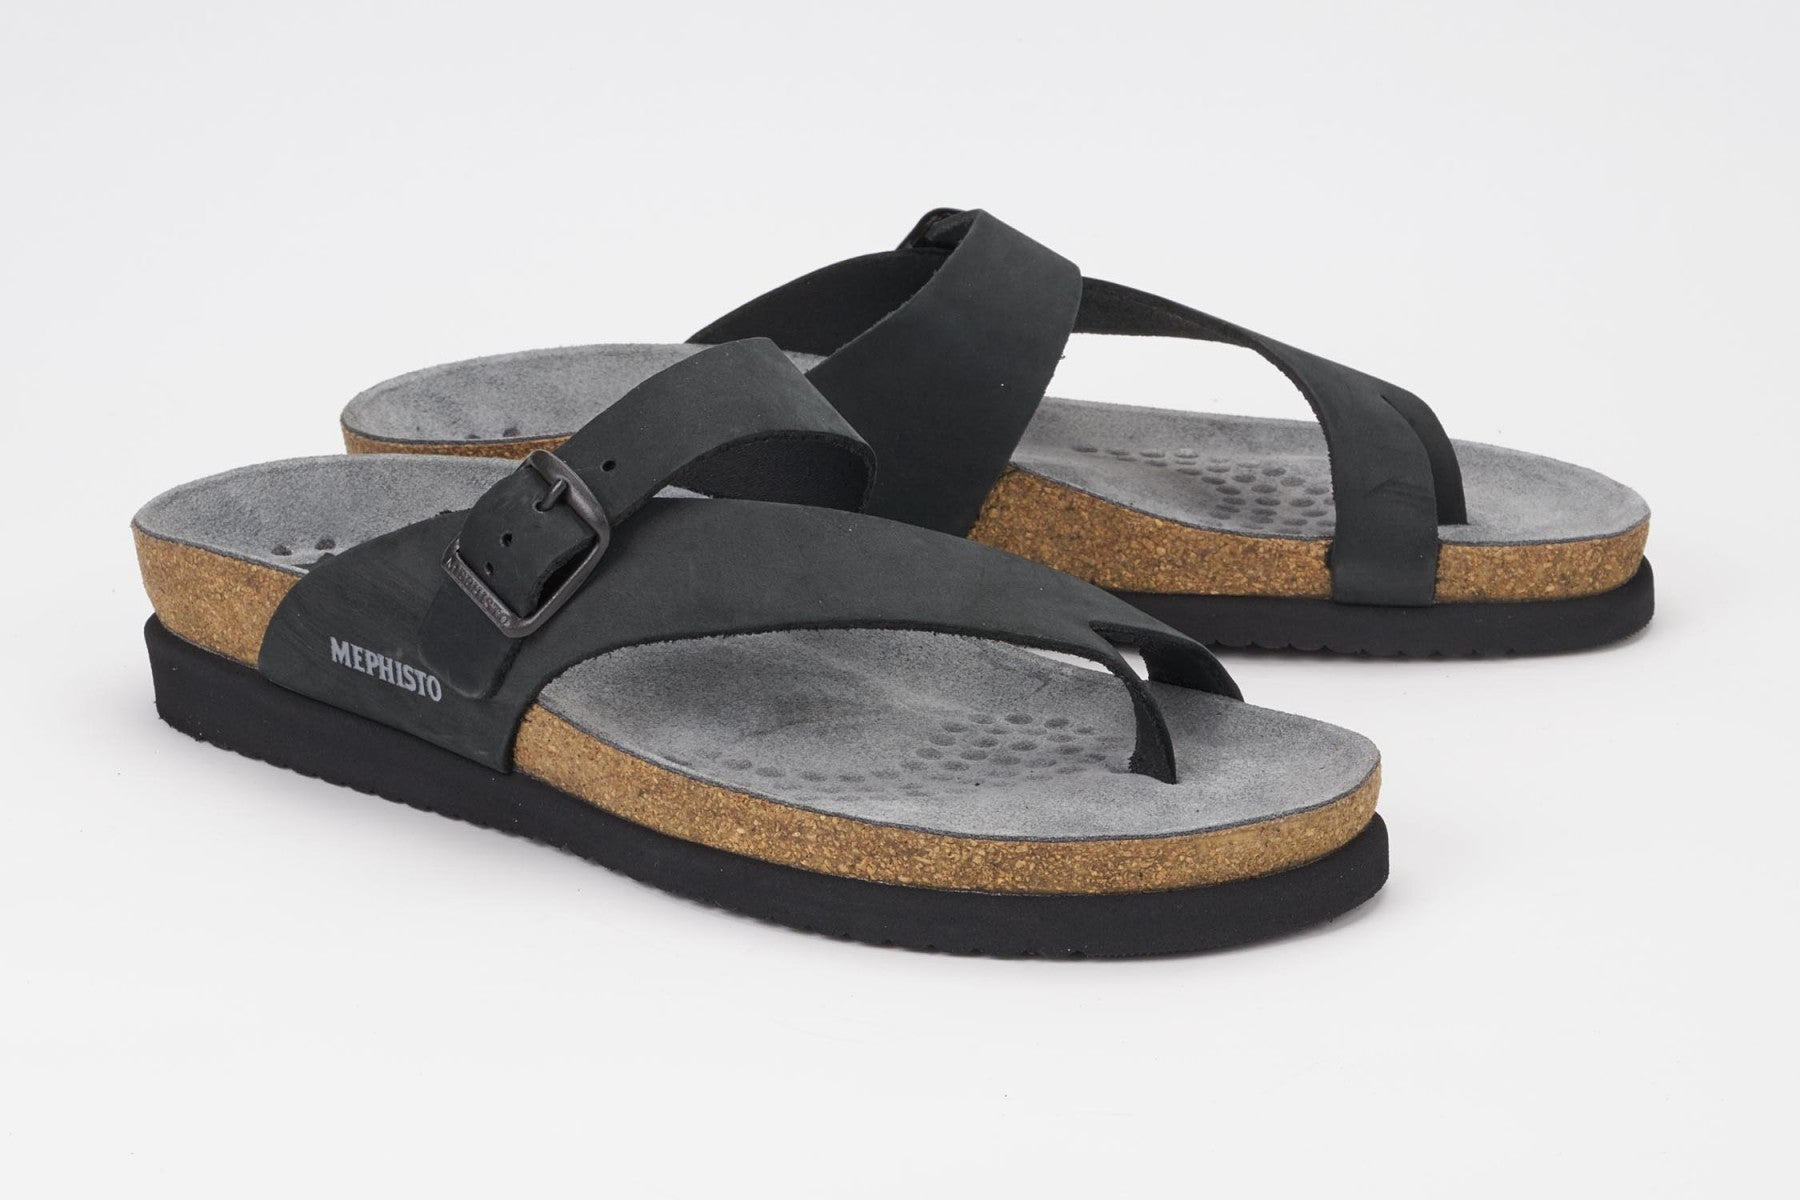 Mephisto HELEN Black Nubuck 6000 Sandal for women - Shop the Shoemaker